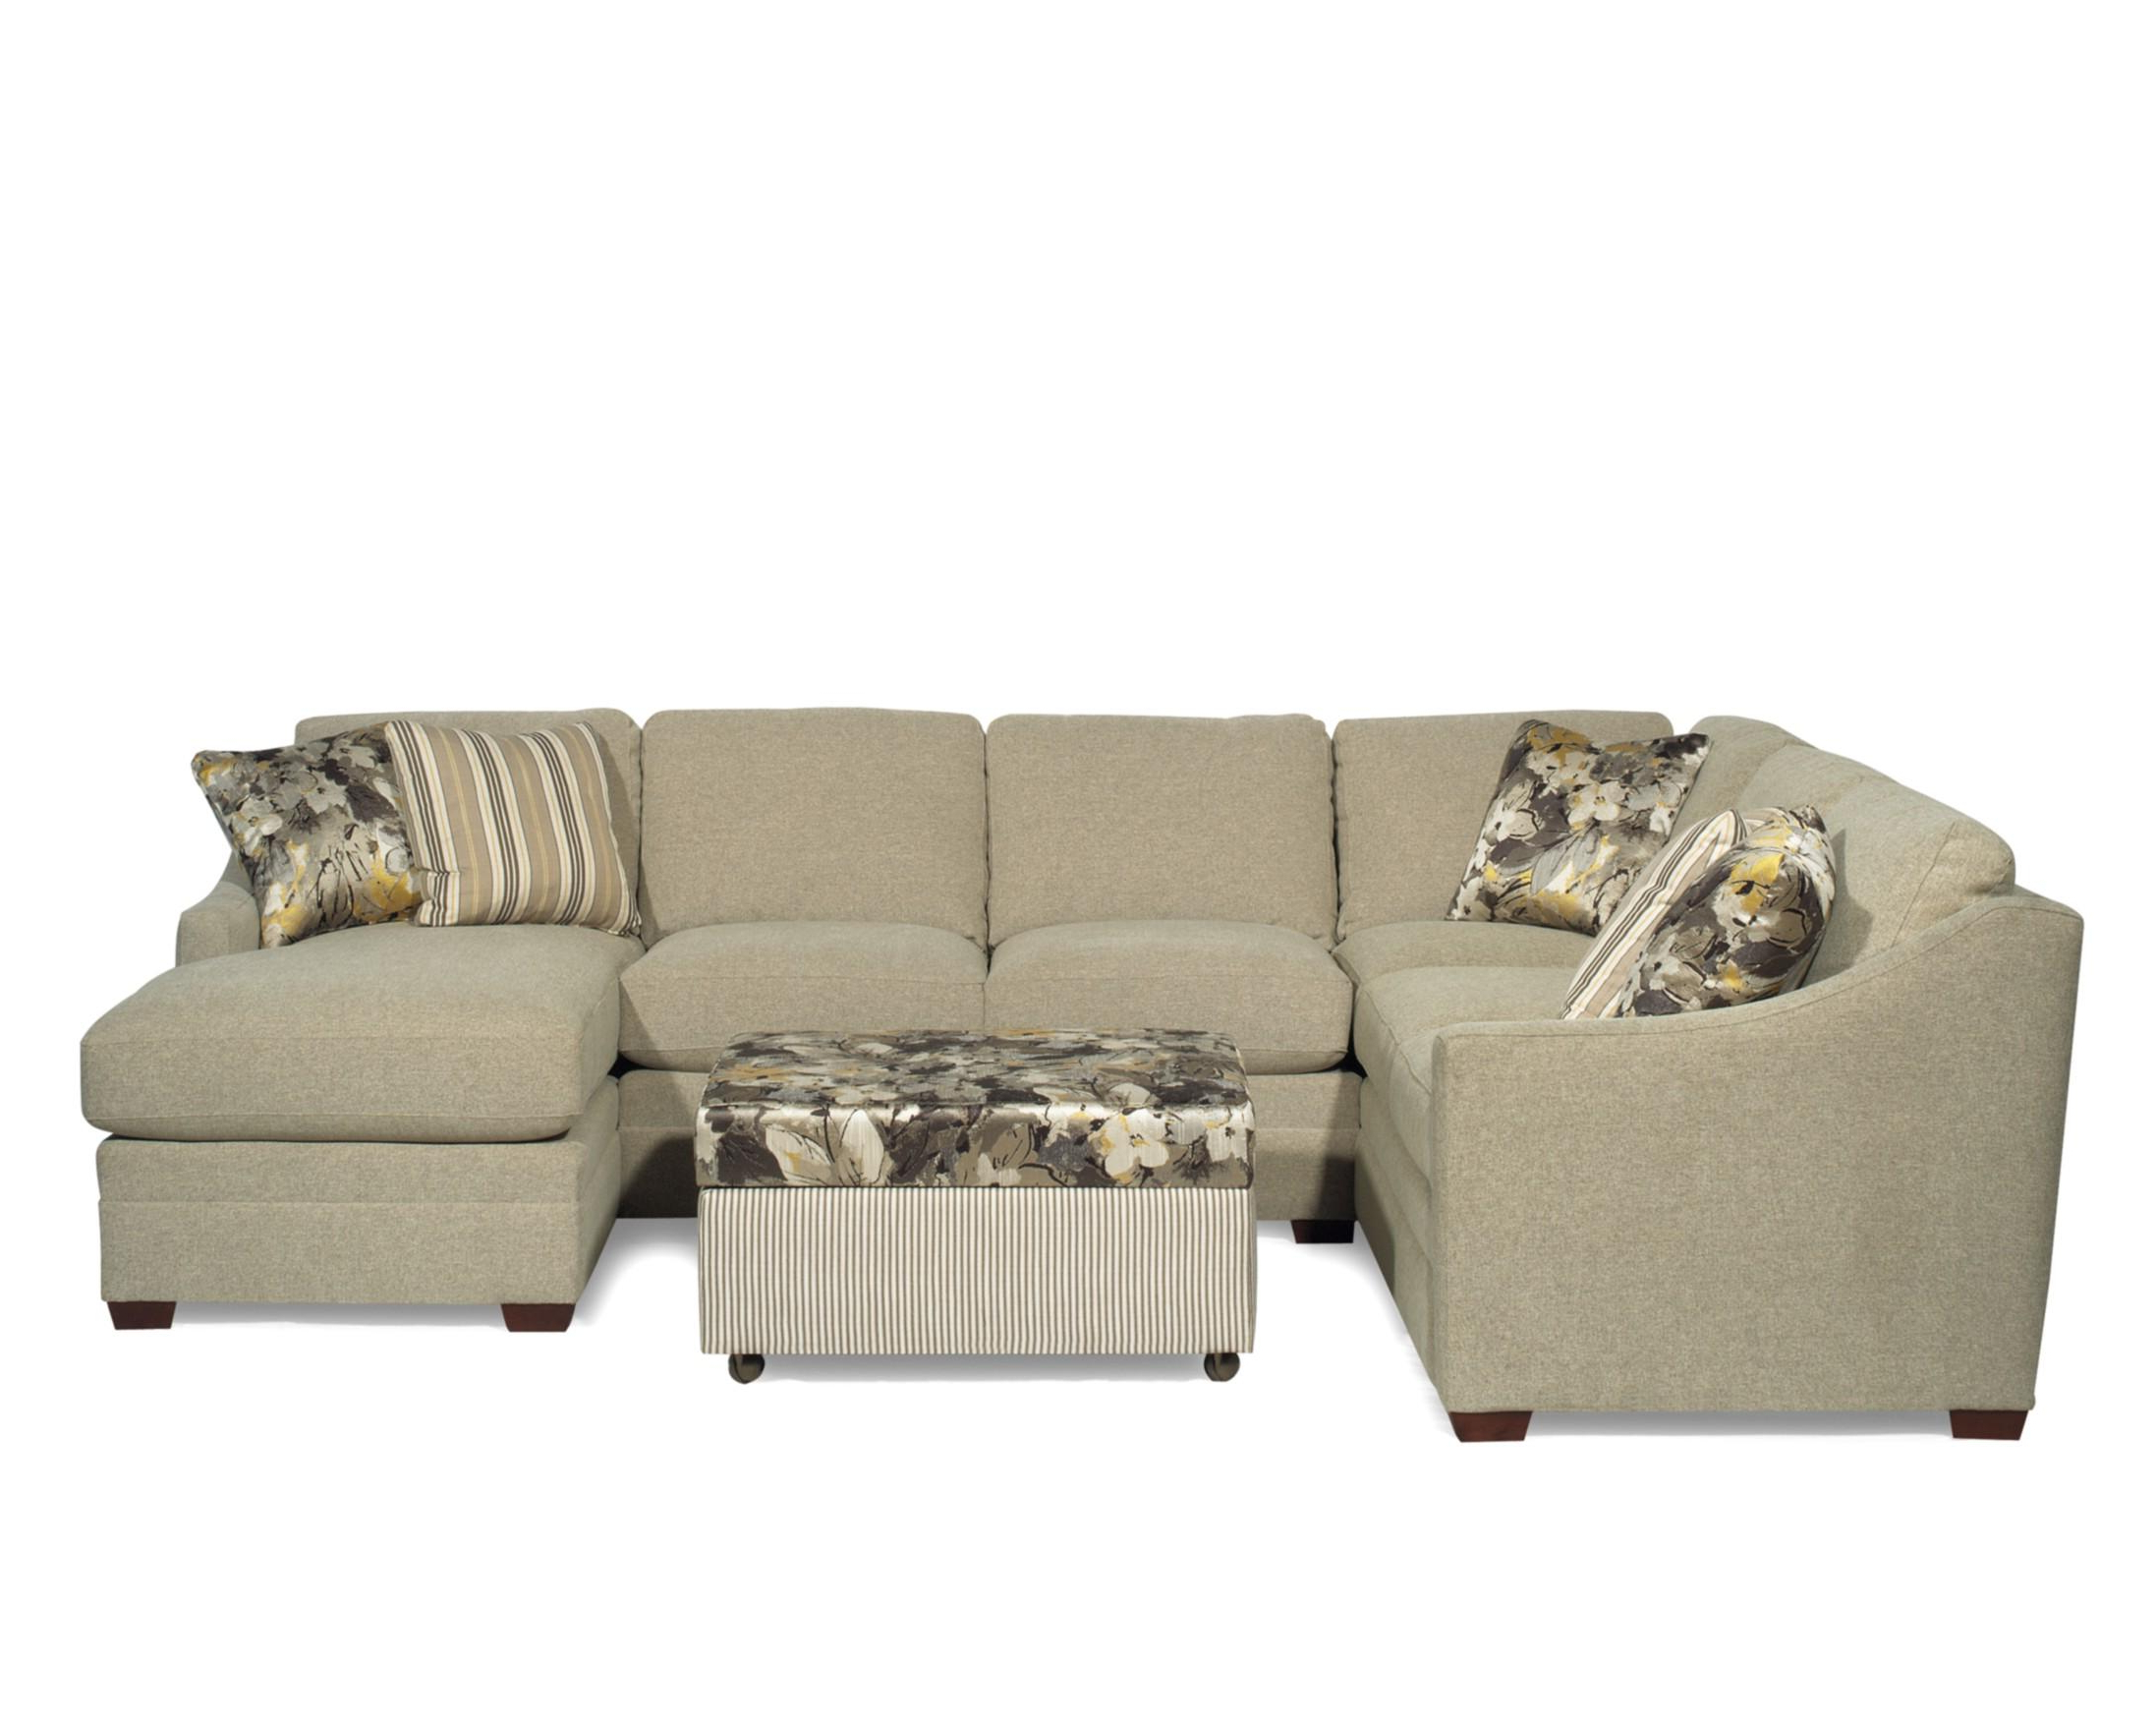 Craftmaster F9 Design Options <B>Customizable</b> 3 Piece Sectional Within 2019 Josephine 2 Piece Sectionals With Laf Sofa (View 4 of 20)